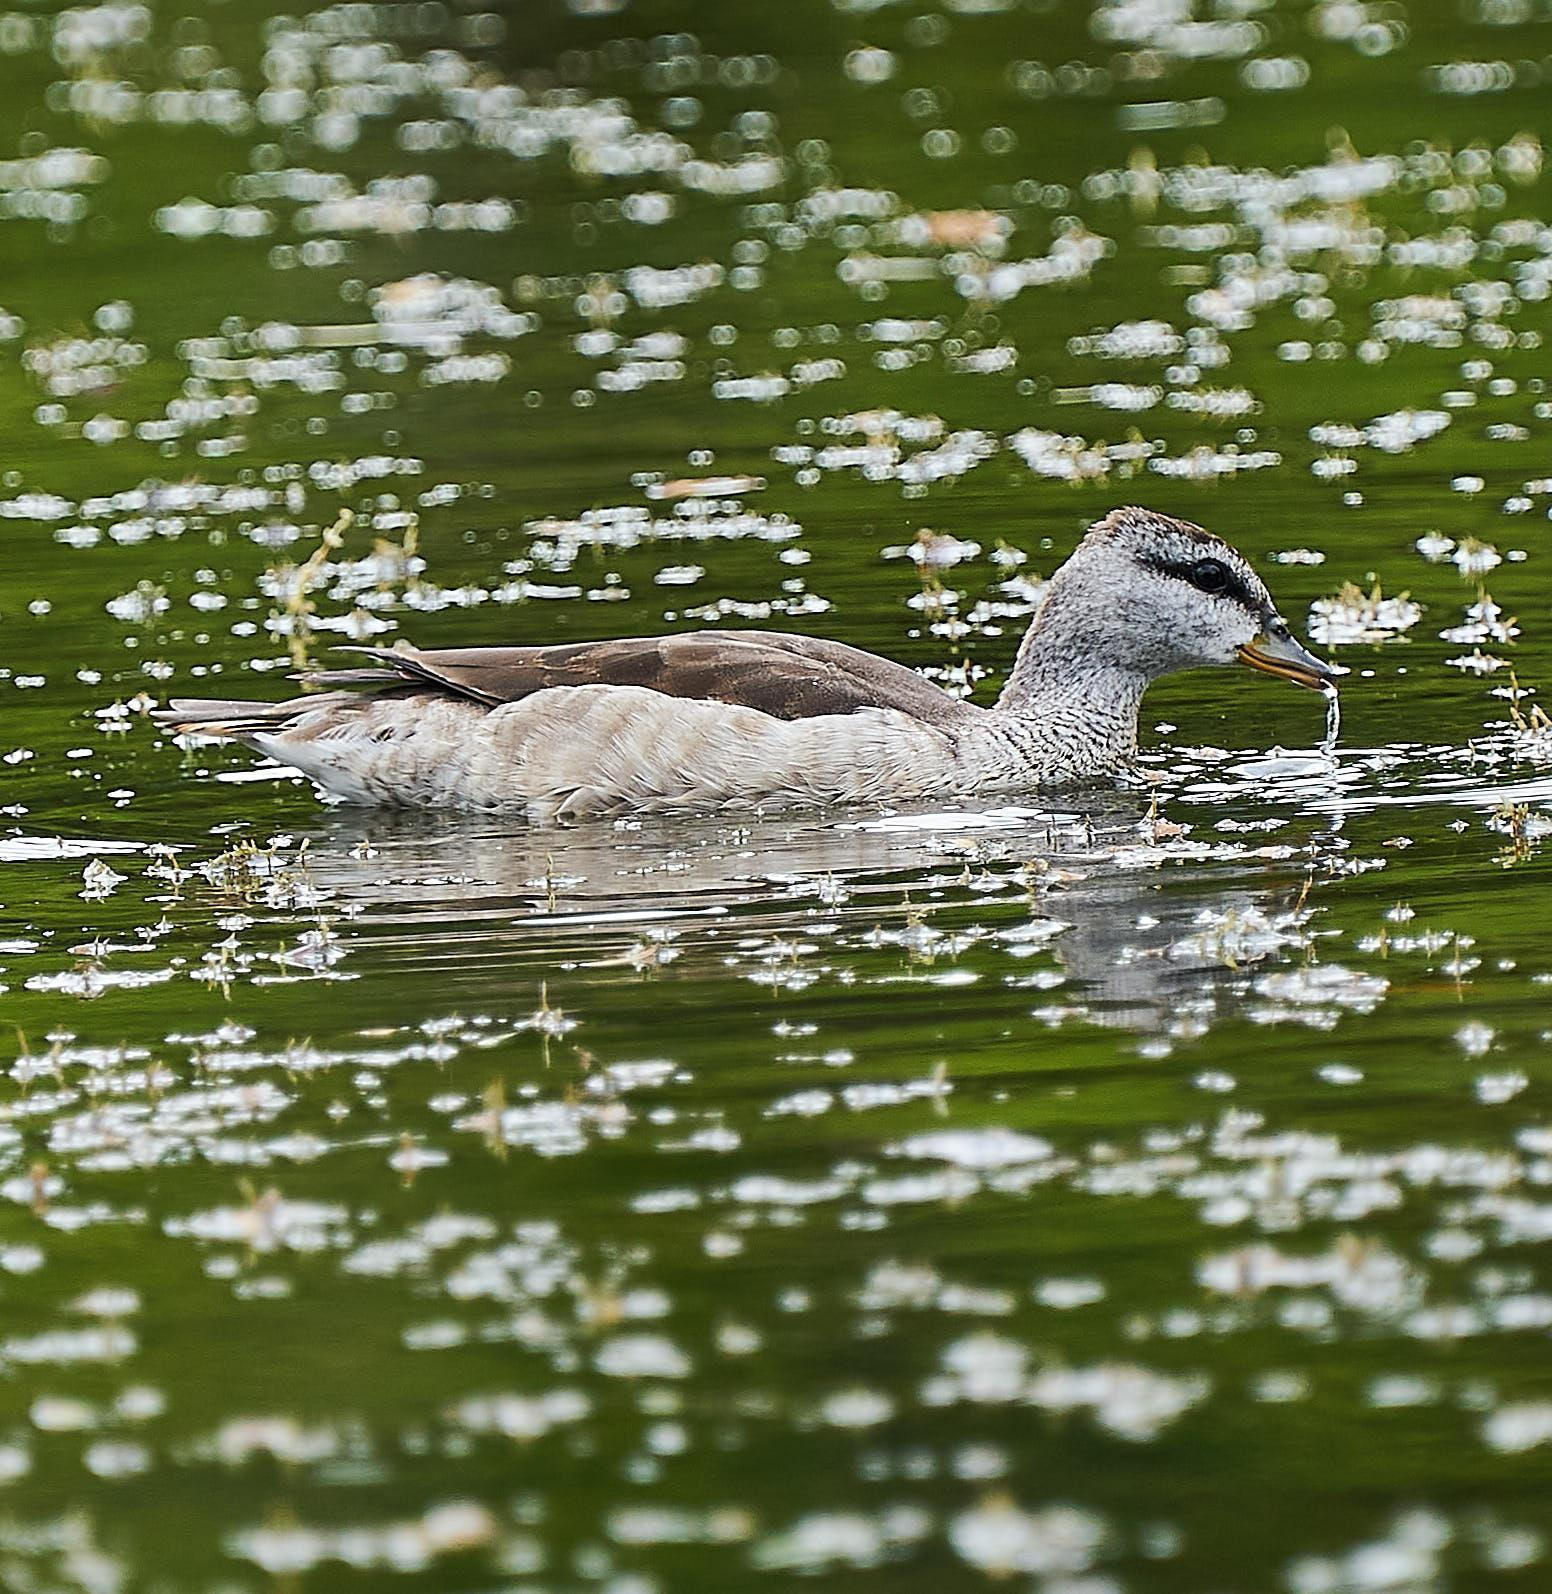 Cotton Pygmy-Goose Photo by Steven Cheong